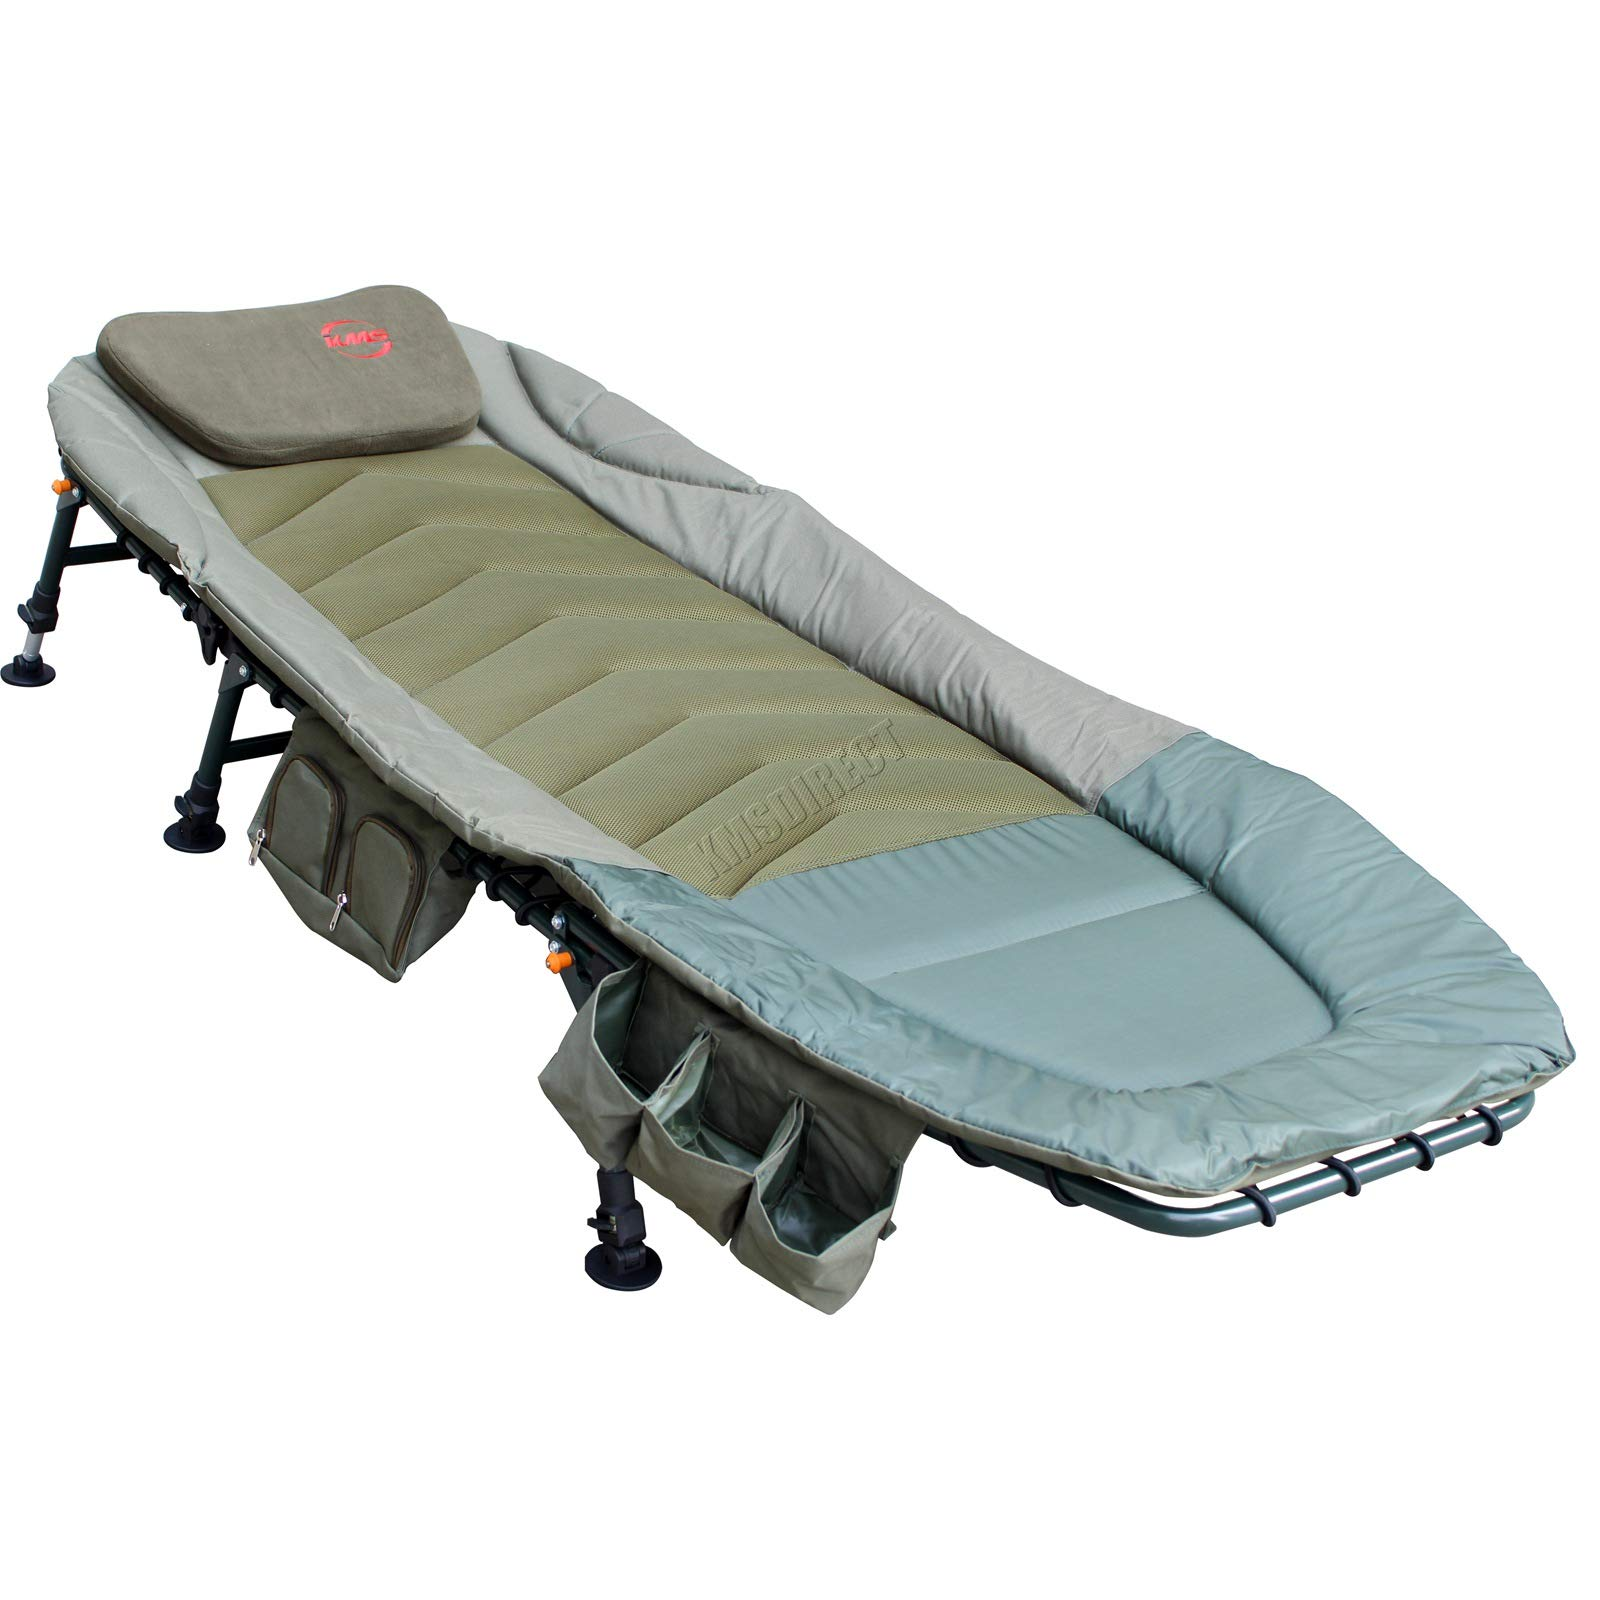 DELUXE CARP FISHING BED CHAIR BEDCHAIR 6 ADJUSTABLE LEGS PILLOW CAMPING COMFY